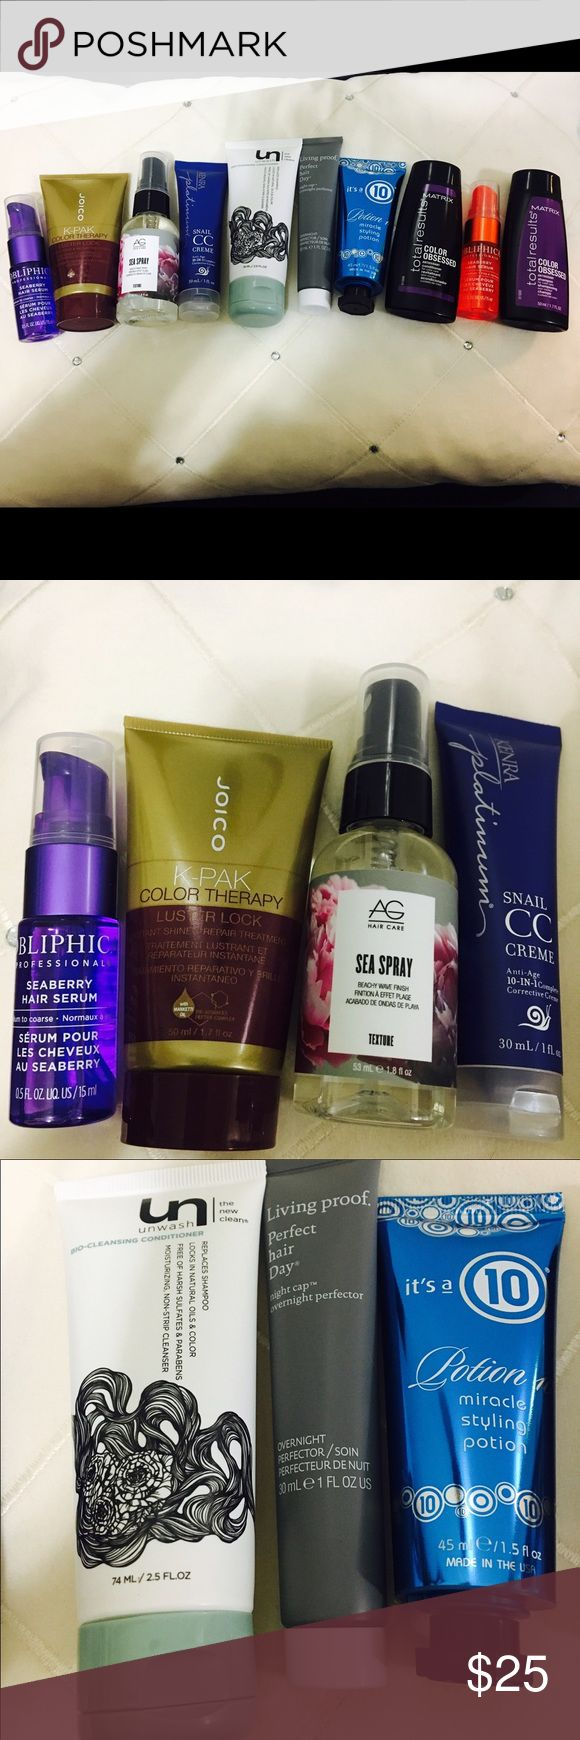 The ultimate hair care bundle! 2 Obliphica Professionals Seaberry Hair Serum.5 Fl. Oz., Matrix total results Color Obsessed Antioxidant shampoo and conditioner 1.7 Fl. Oz. (One of each), 1 it's a 10 Potion 10 miracle styling potion 1.5 Fl. Oz., 1 Living proof perfect hair day night cap 1 Fl. Oz., 1 AG hair care texture sea spray 1.8 Fl. Oz., Joico K-Pak color therapy luster lock. 1.7 Fl. Oz., 1 Kenra platinum CC cream 1 Fl. Oz., 1 UN Bio-cleansing conditioner 2.5 Fl. Oz. NEW…